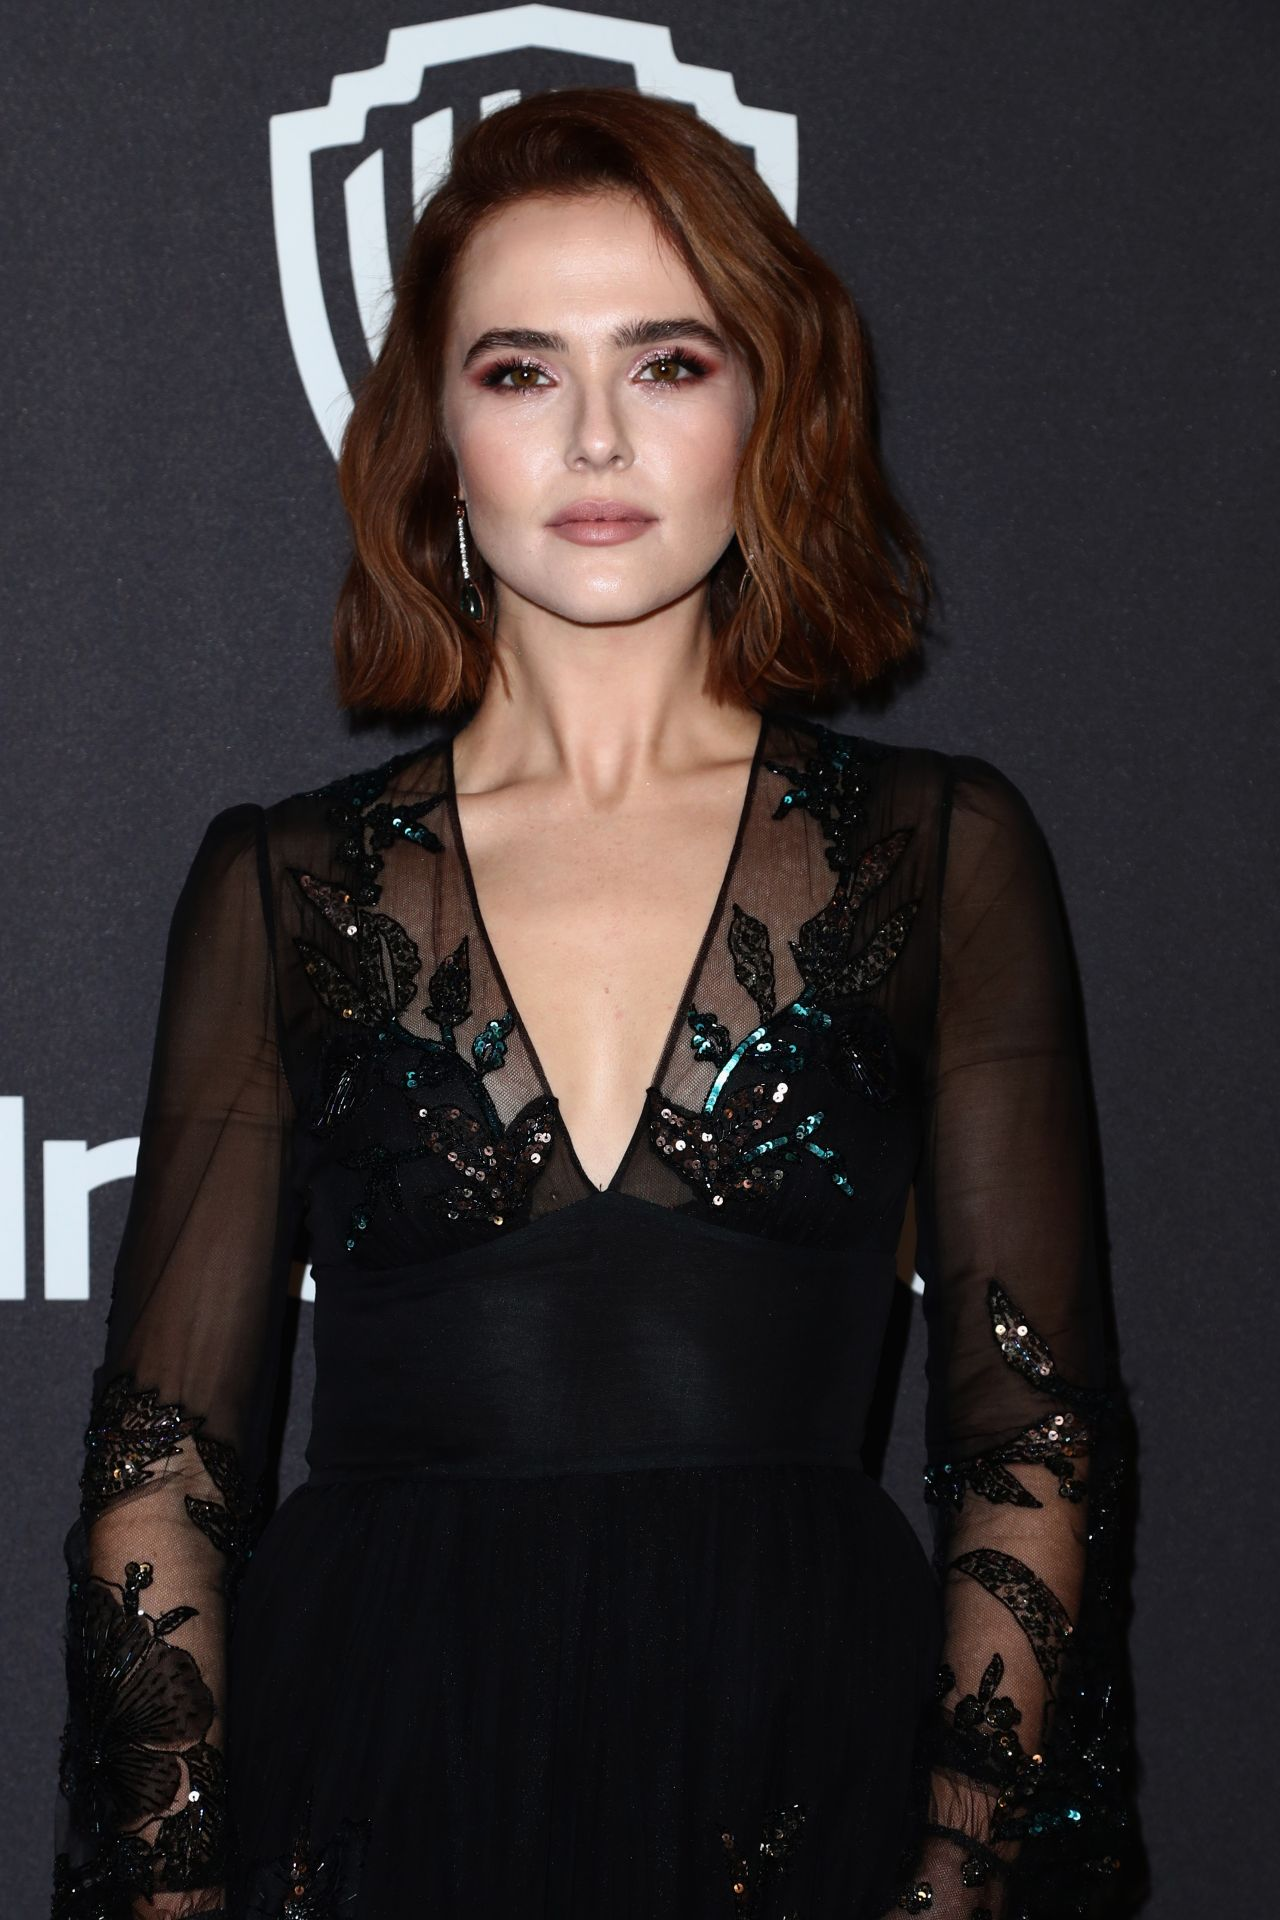 Cleavage 2019 Zoey Deutch naked photo 2017